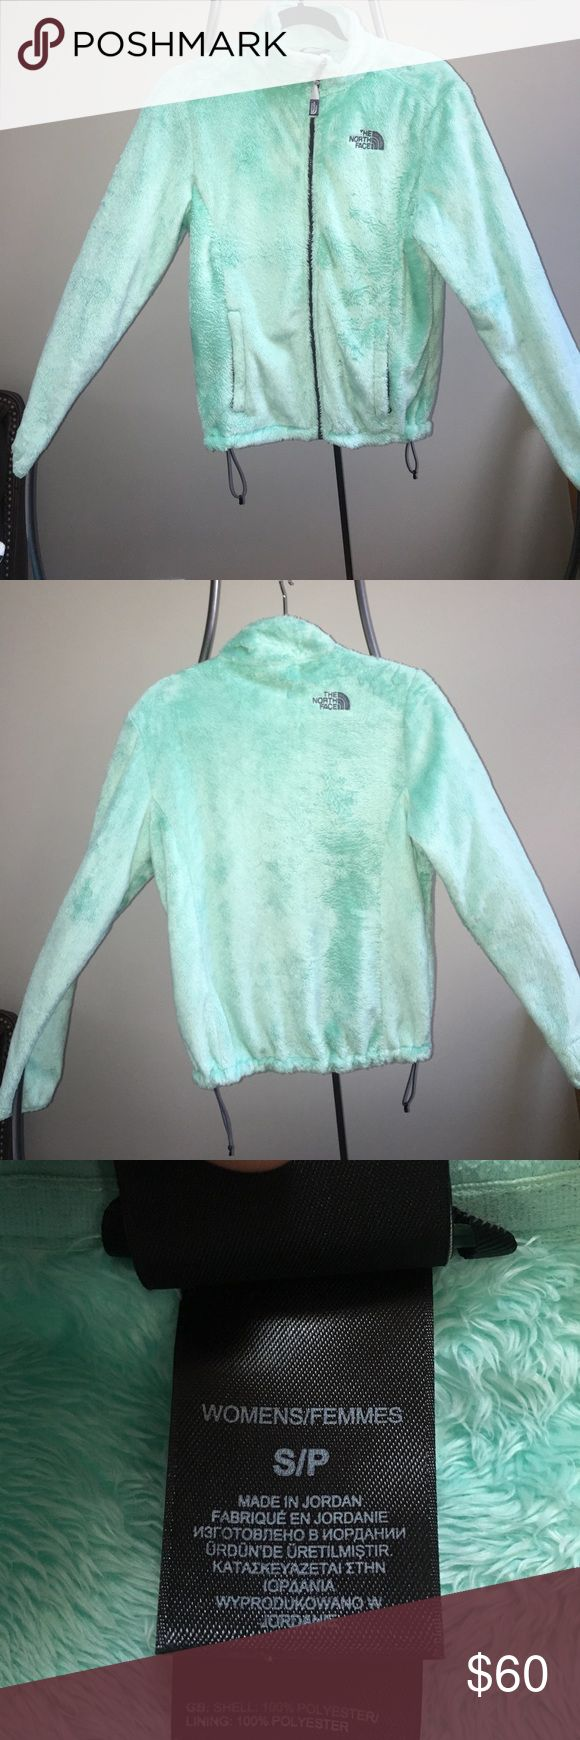 Ladies Small Mint Green North Face Jacket I bought this a little under 2 years ago and has been worn very few times. Cute color and very comfortable! North Face Jackets & Coats